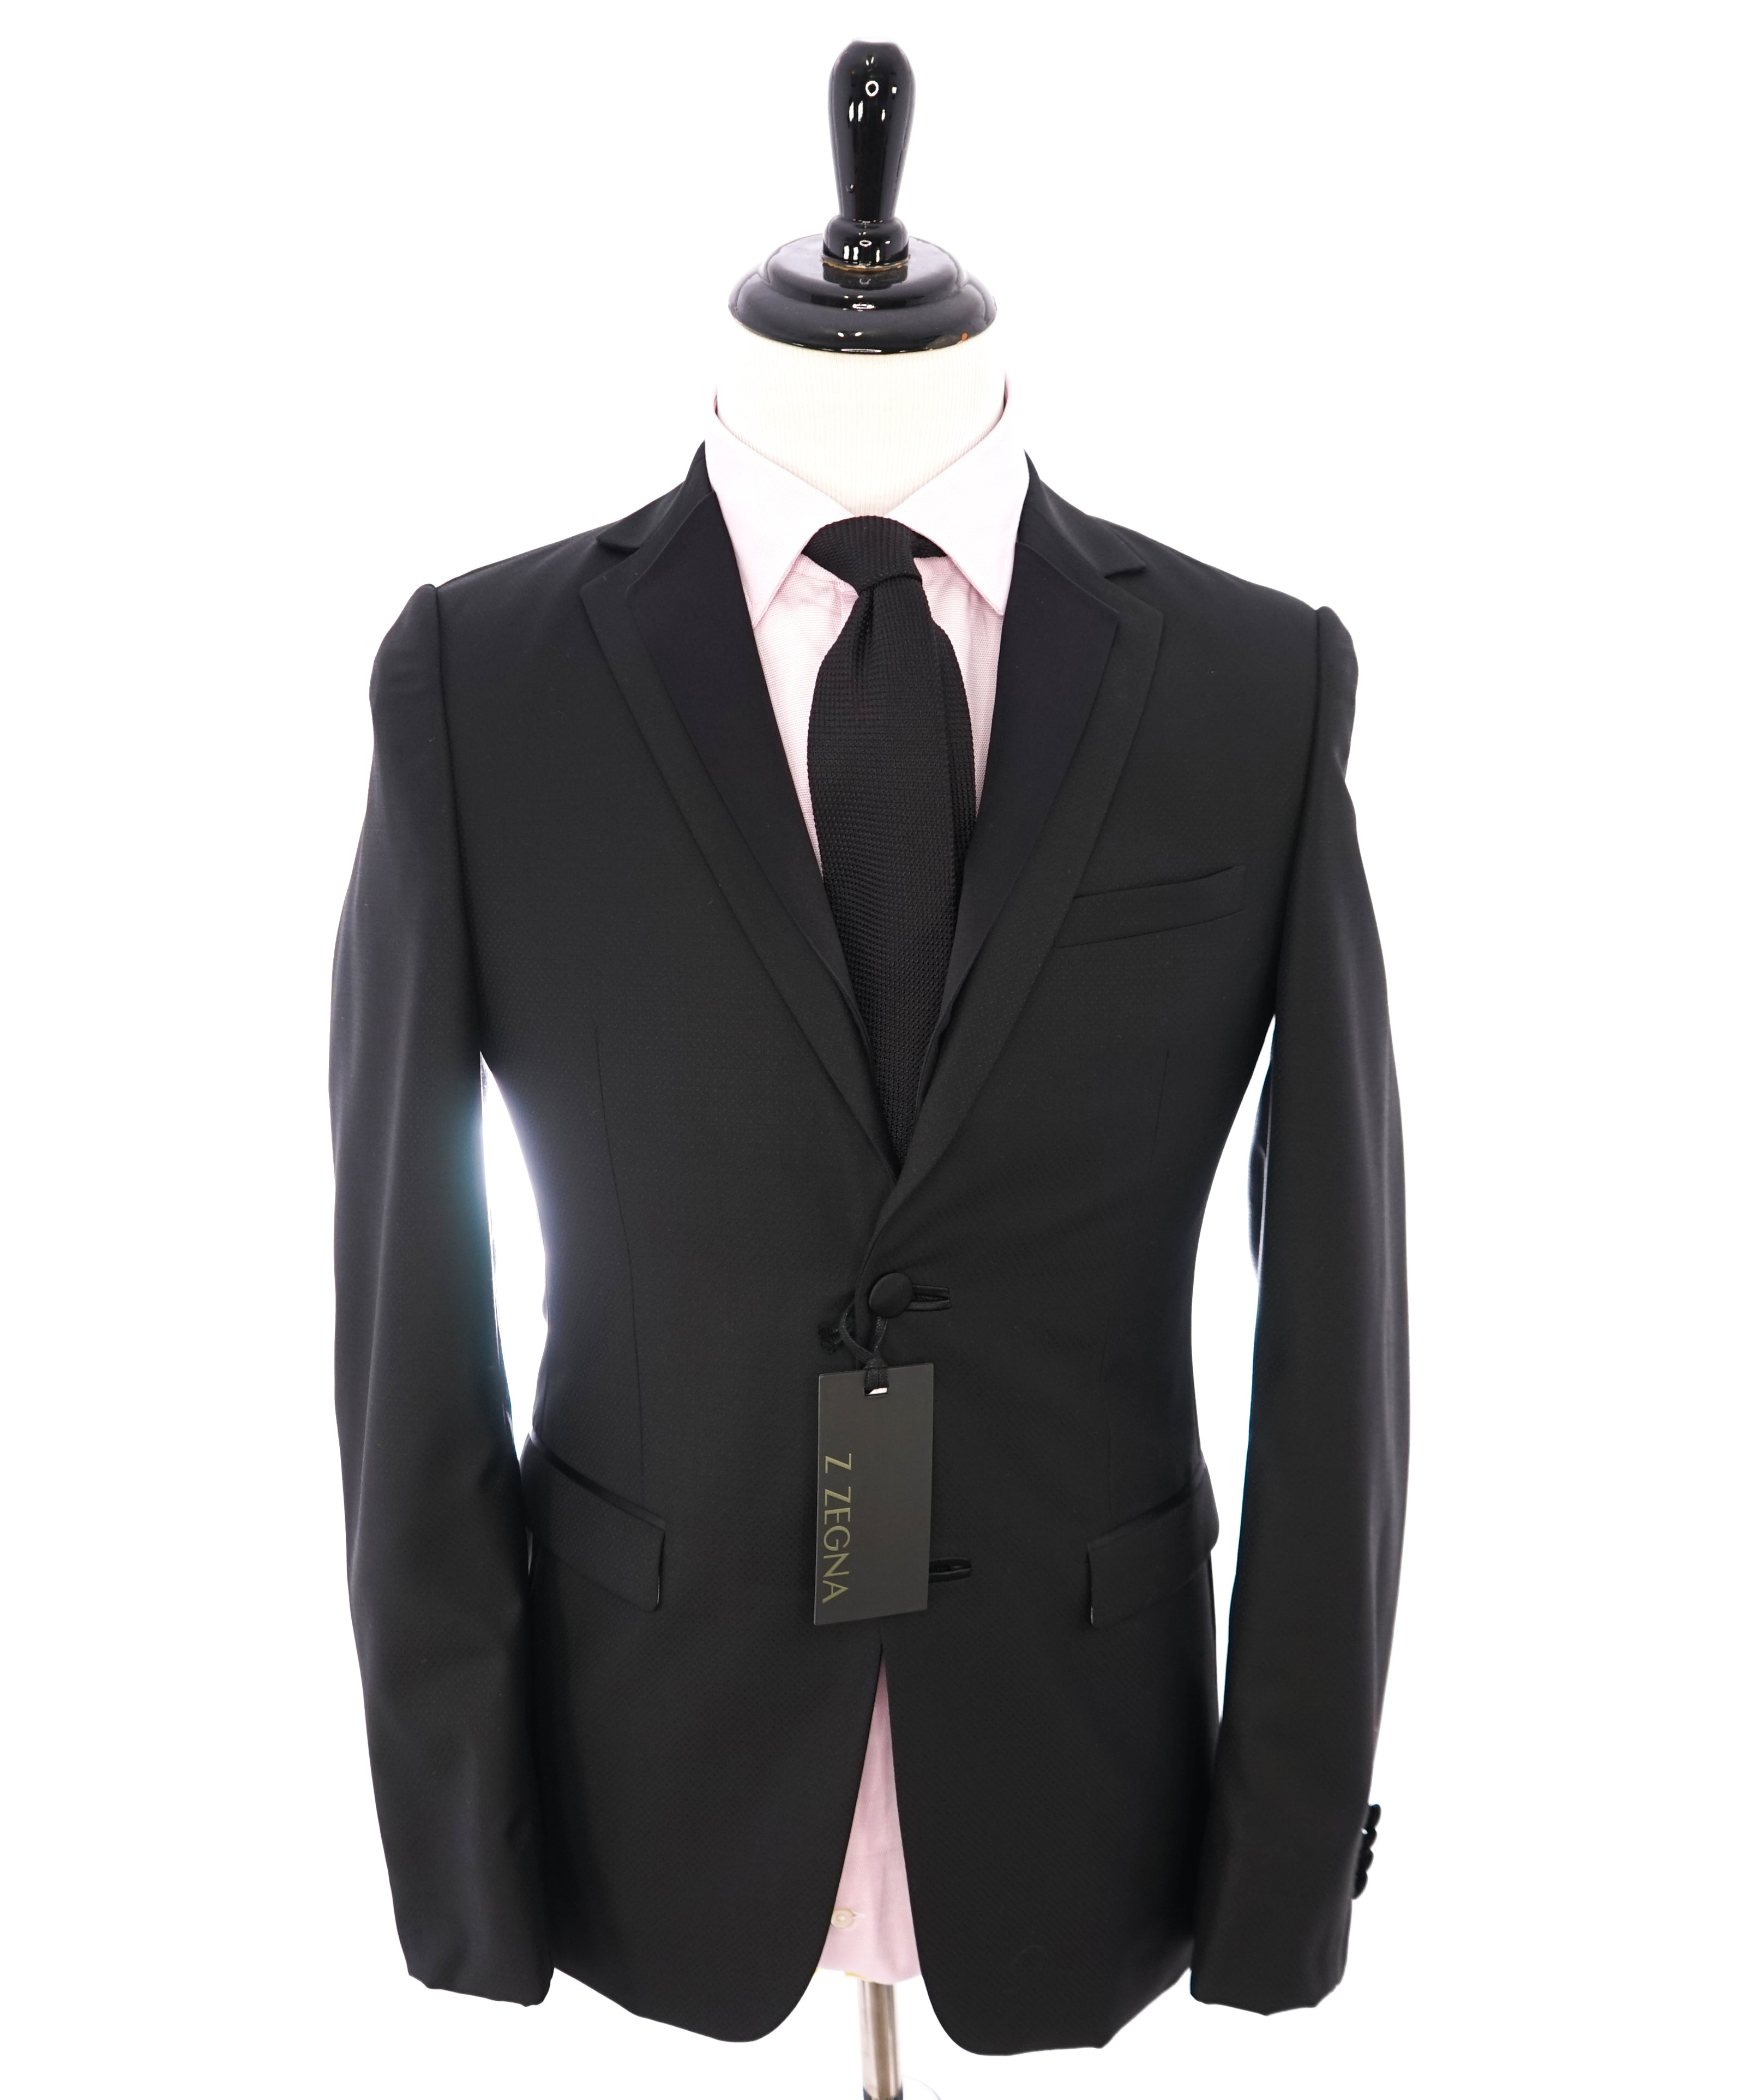 Z ZEGNA - Black Textured Fabric W Silk Lapel Drop 8 Wool Tuxedo Suit - 36R